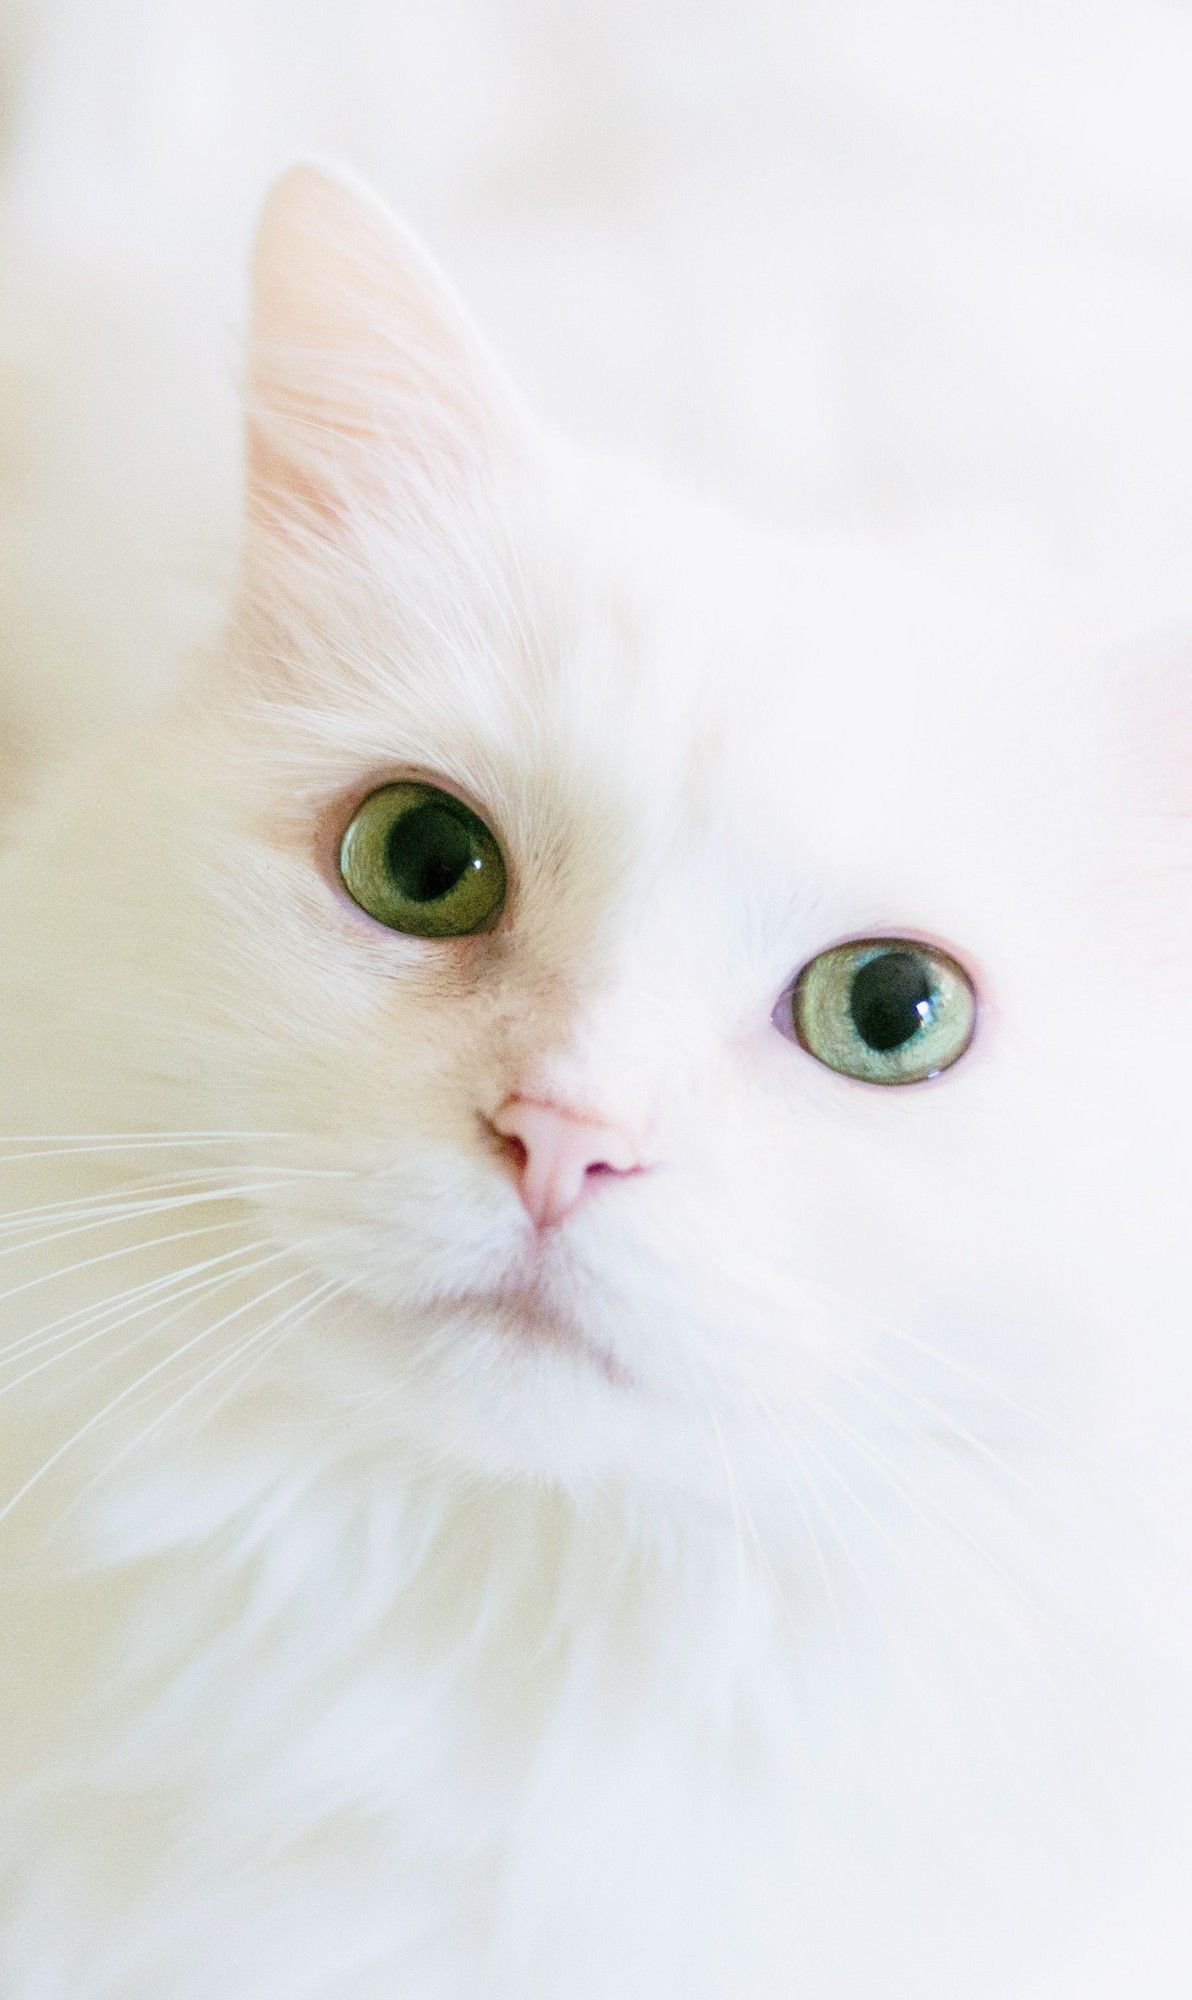 Cute White Cat Wallpaper For Phone